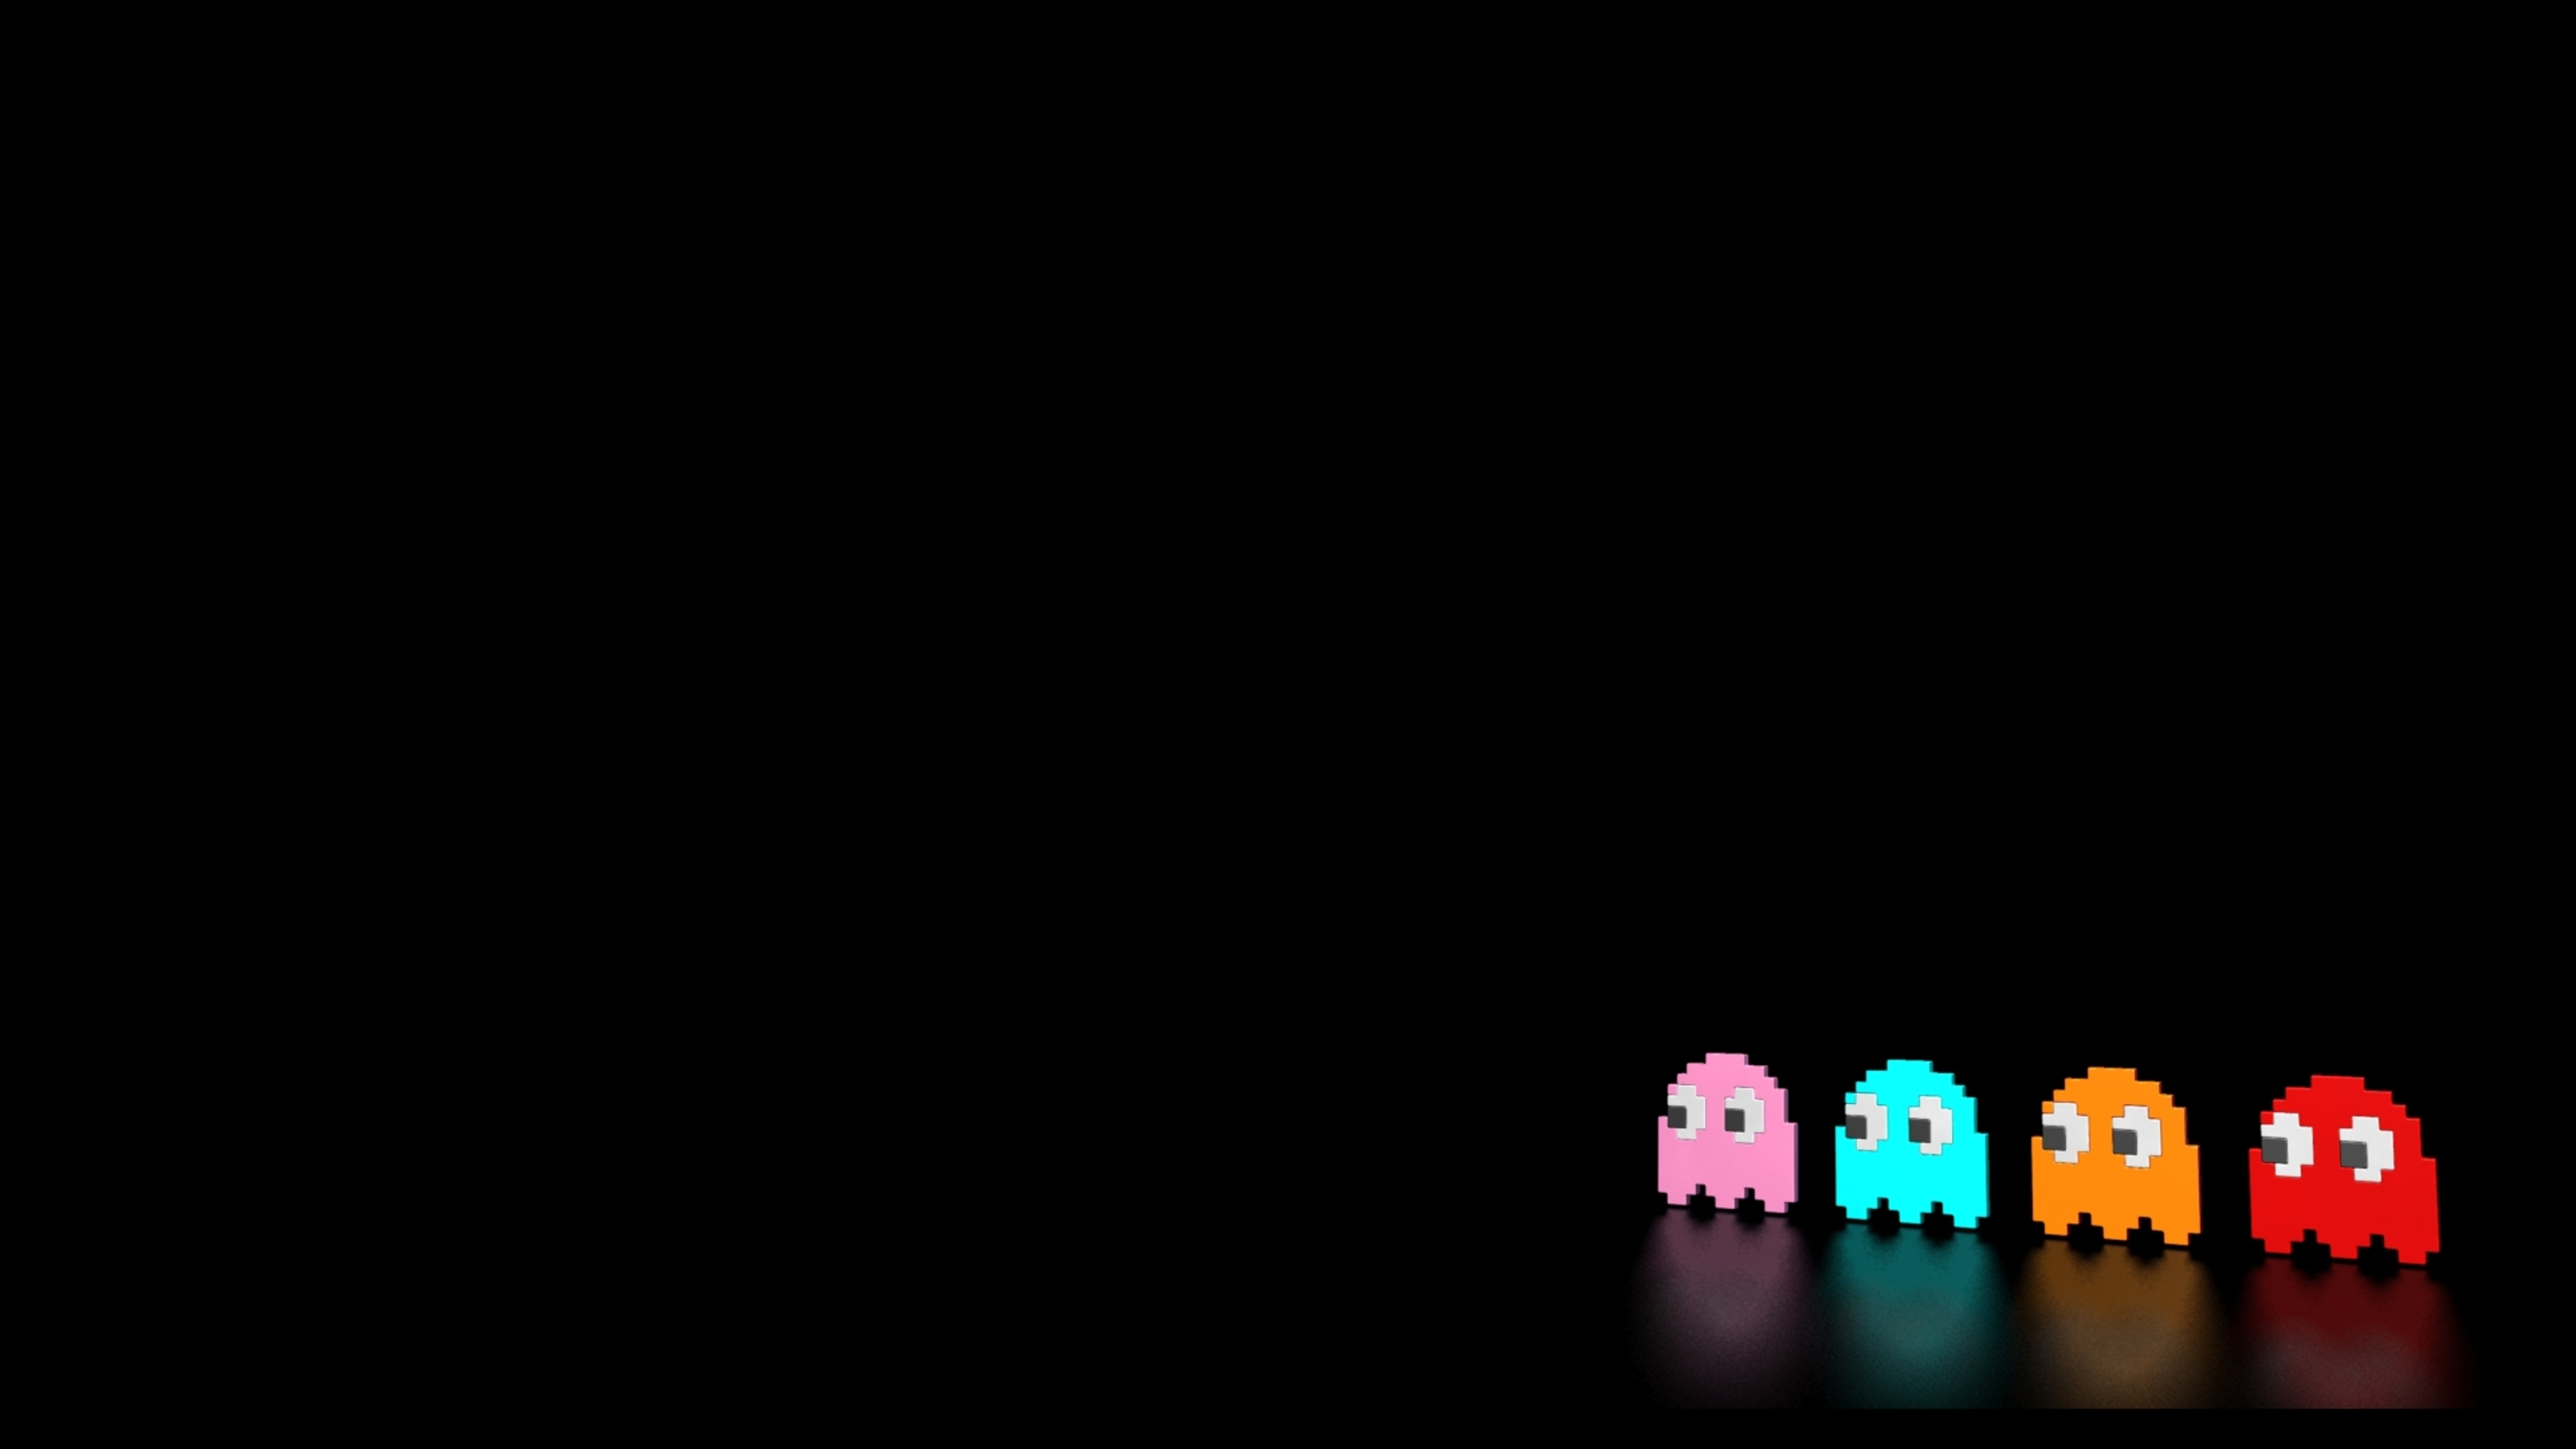 Pacman Wallpaper Iphone X Pacman Full Hd Fond D 233 Cran And Arri 232 Re Plan 2844x1600